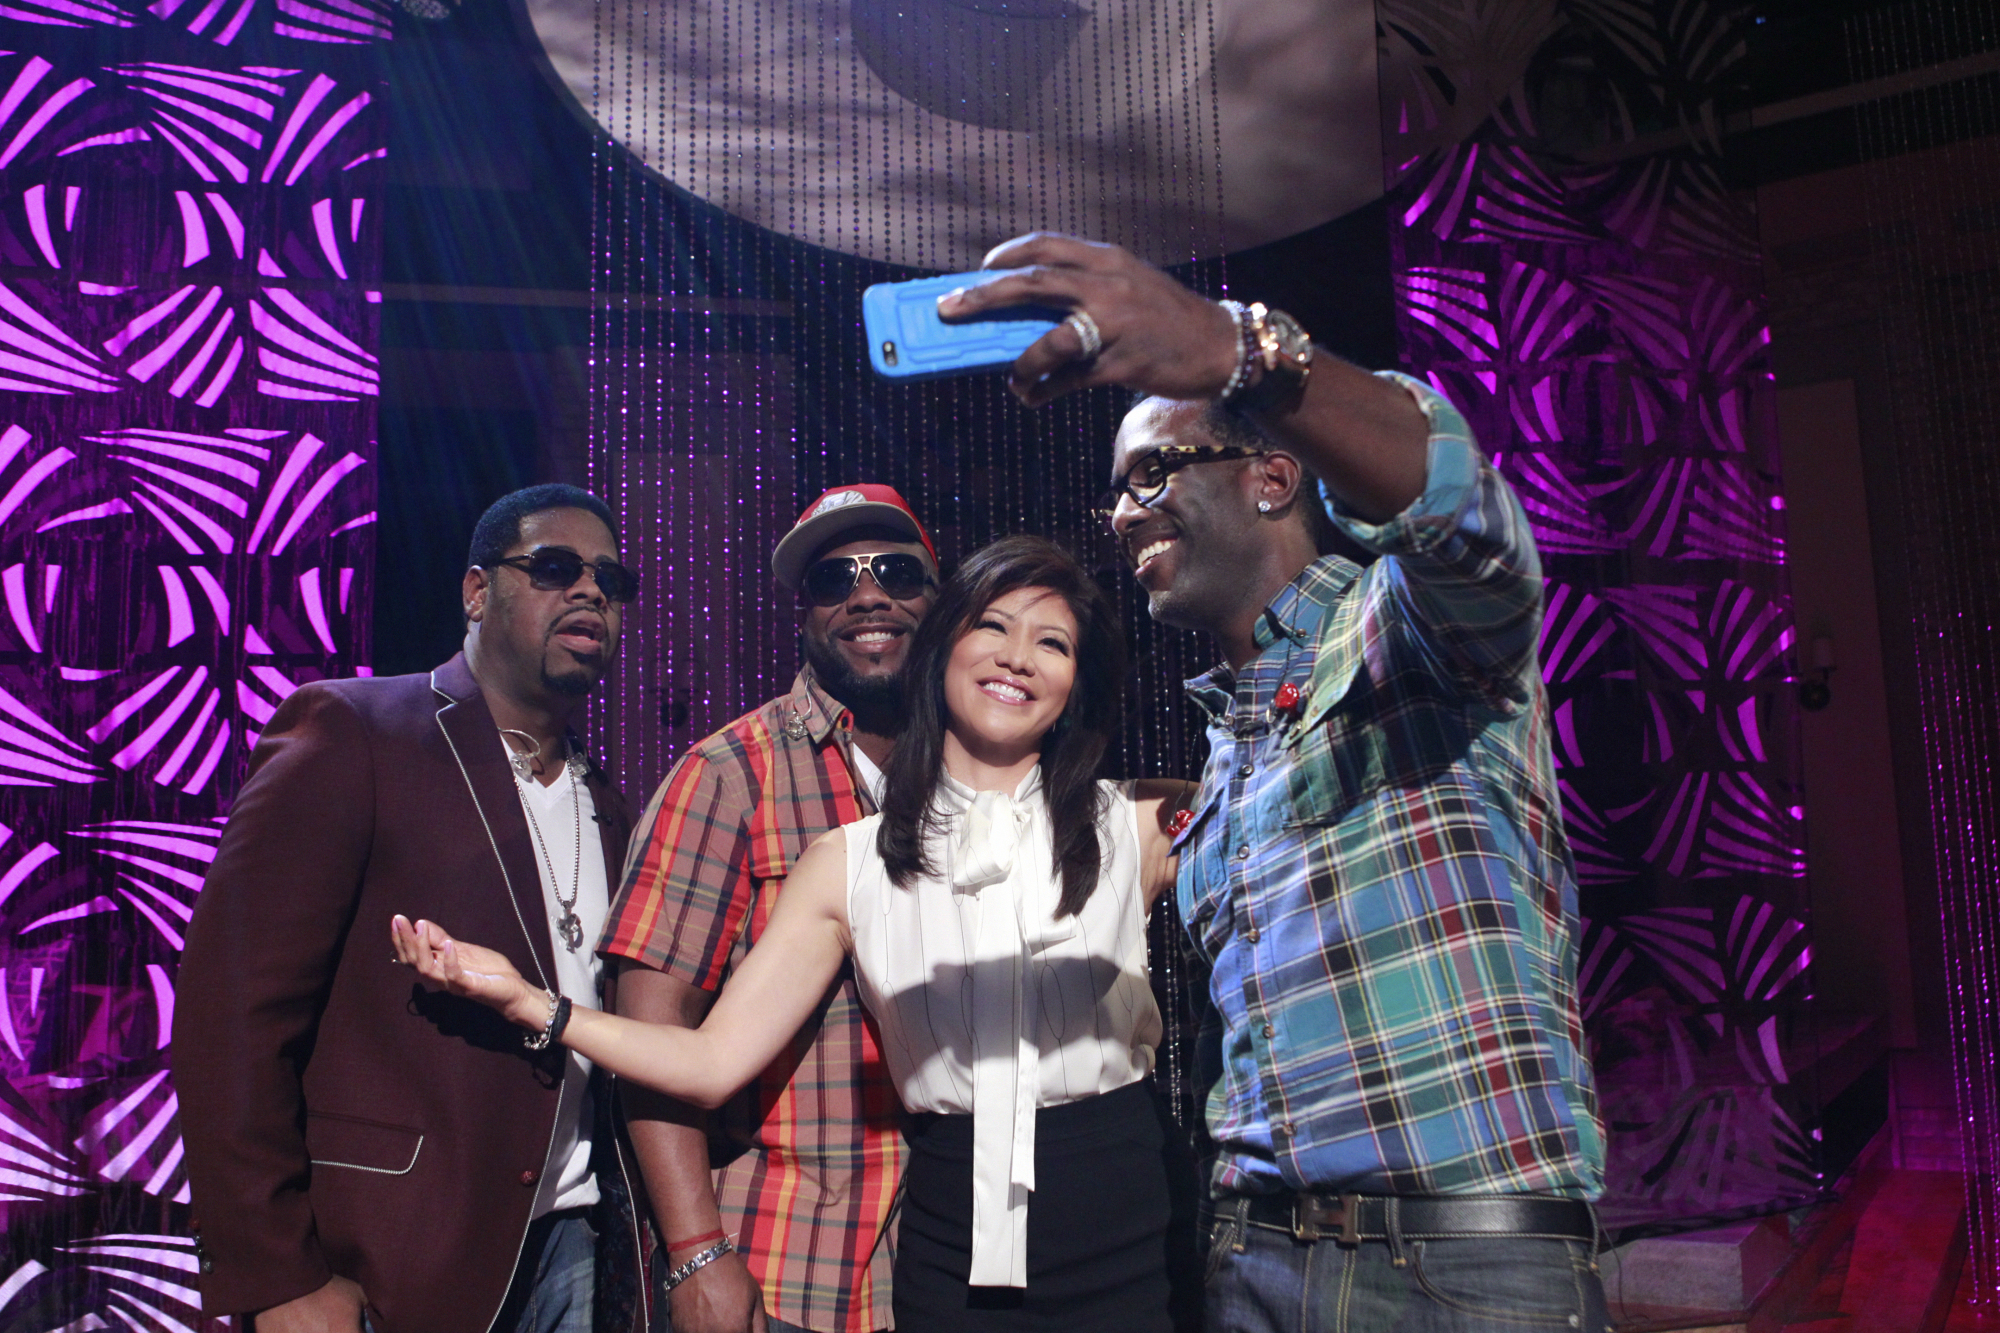 5. Boyz II Men performing